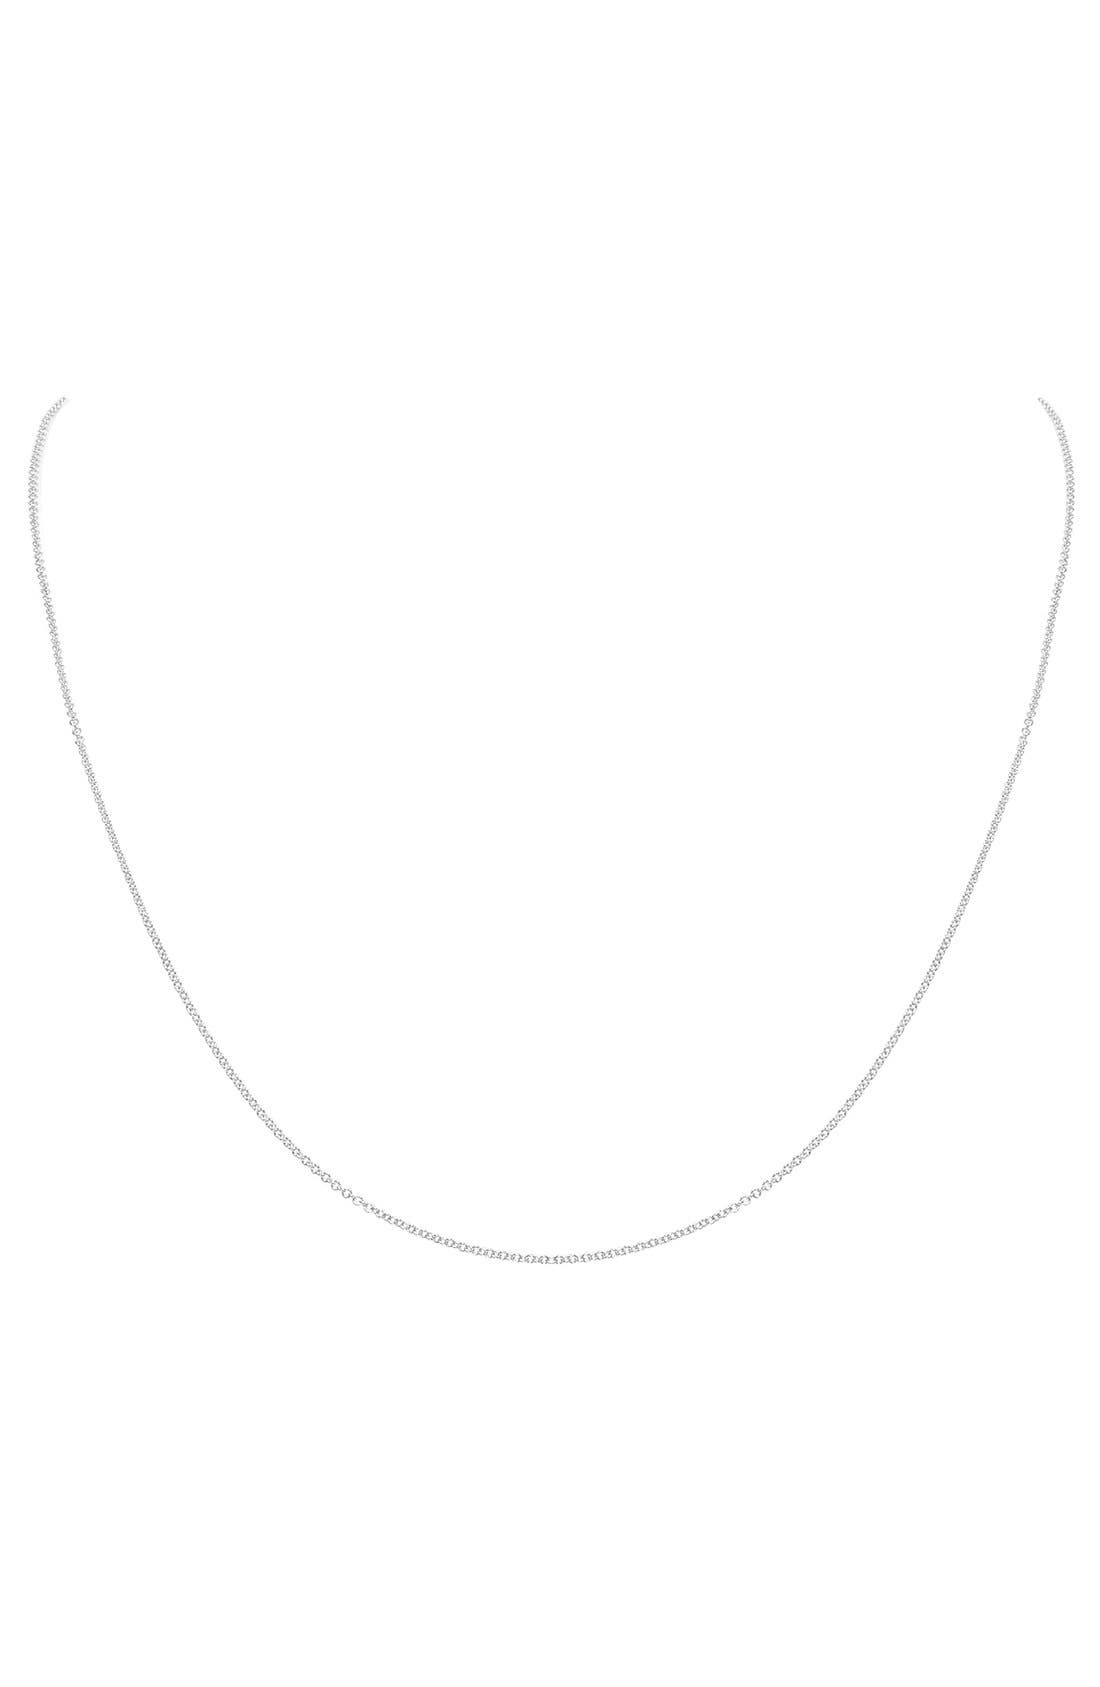 Alternate Image 2  - Bony Levy Chain Necklace (Nordstrom Exclusive)